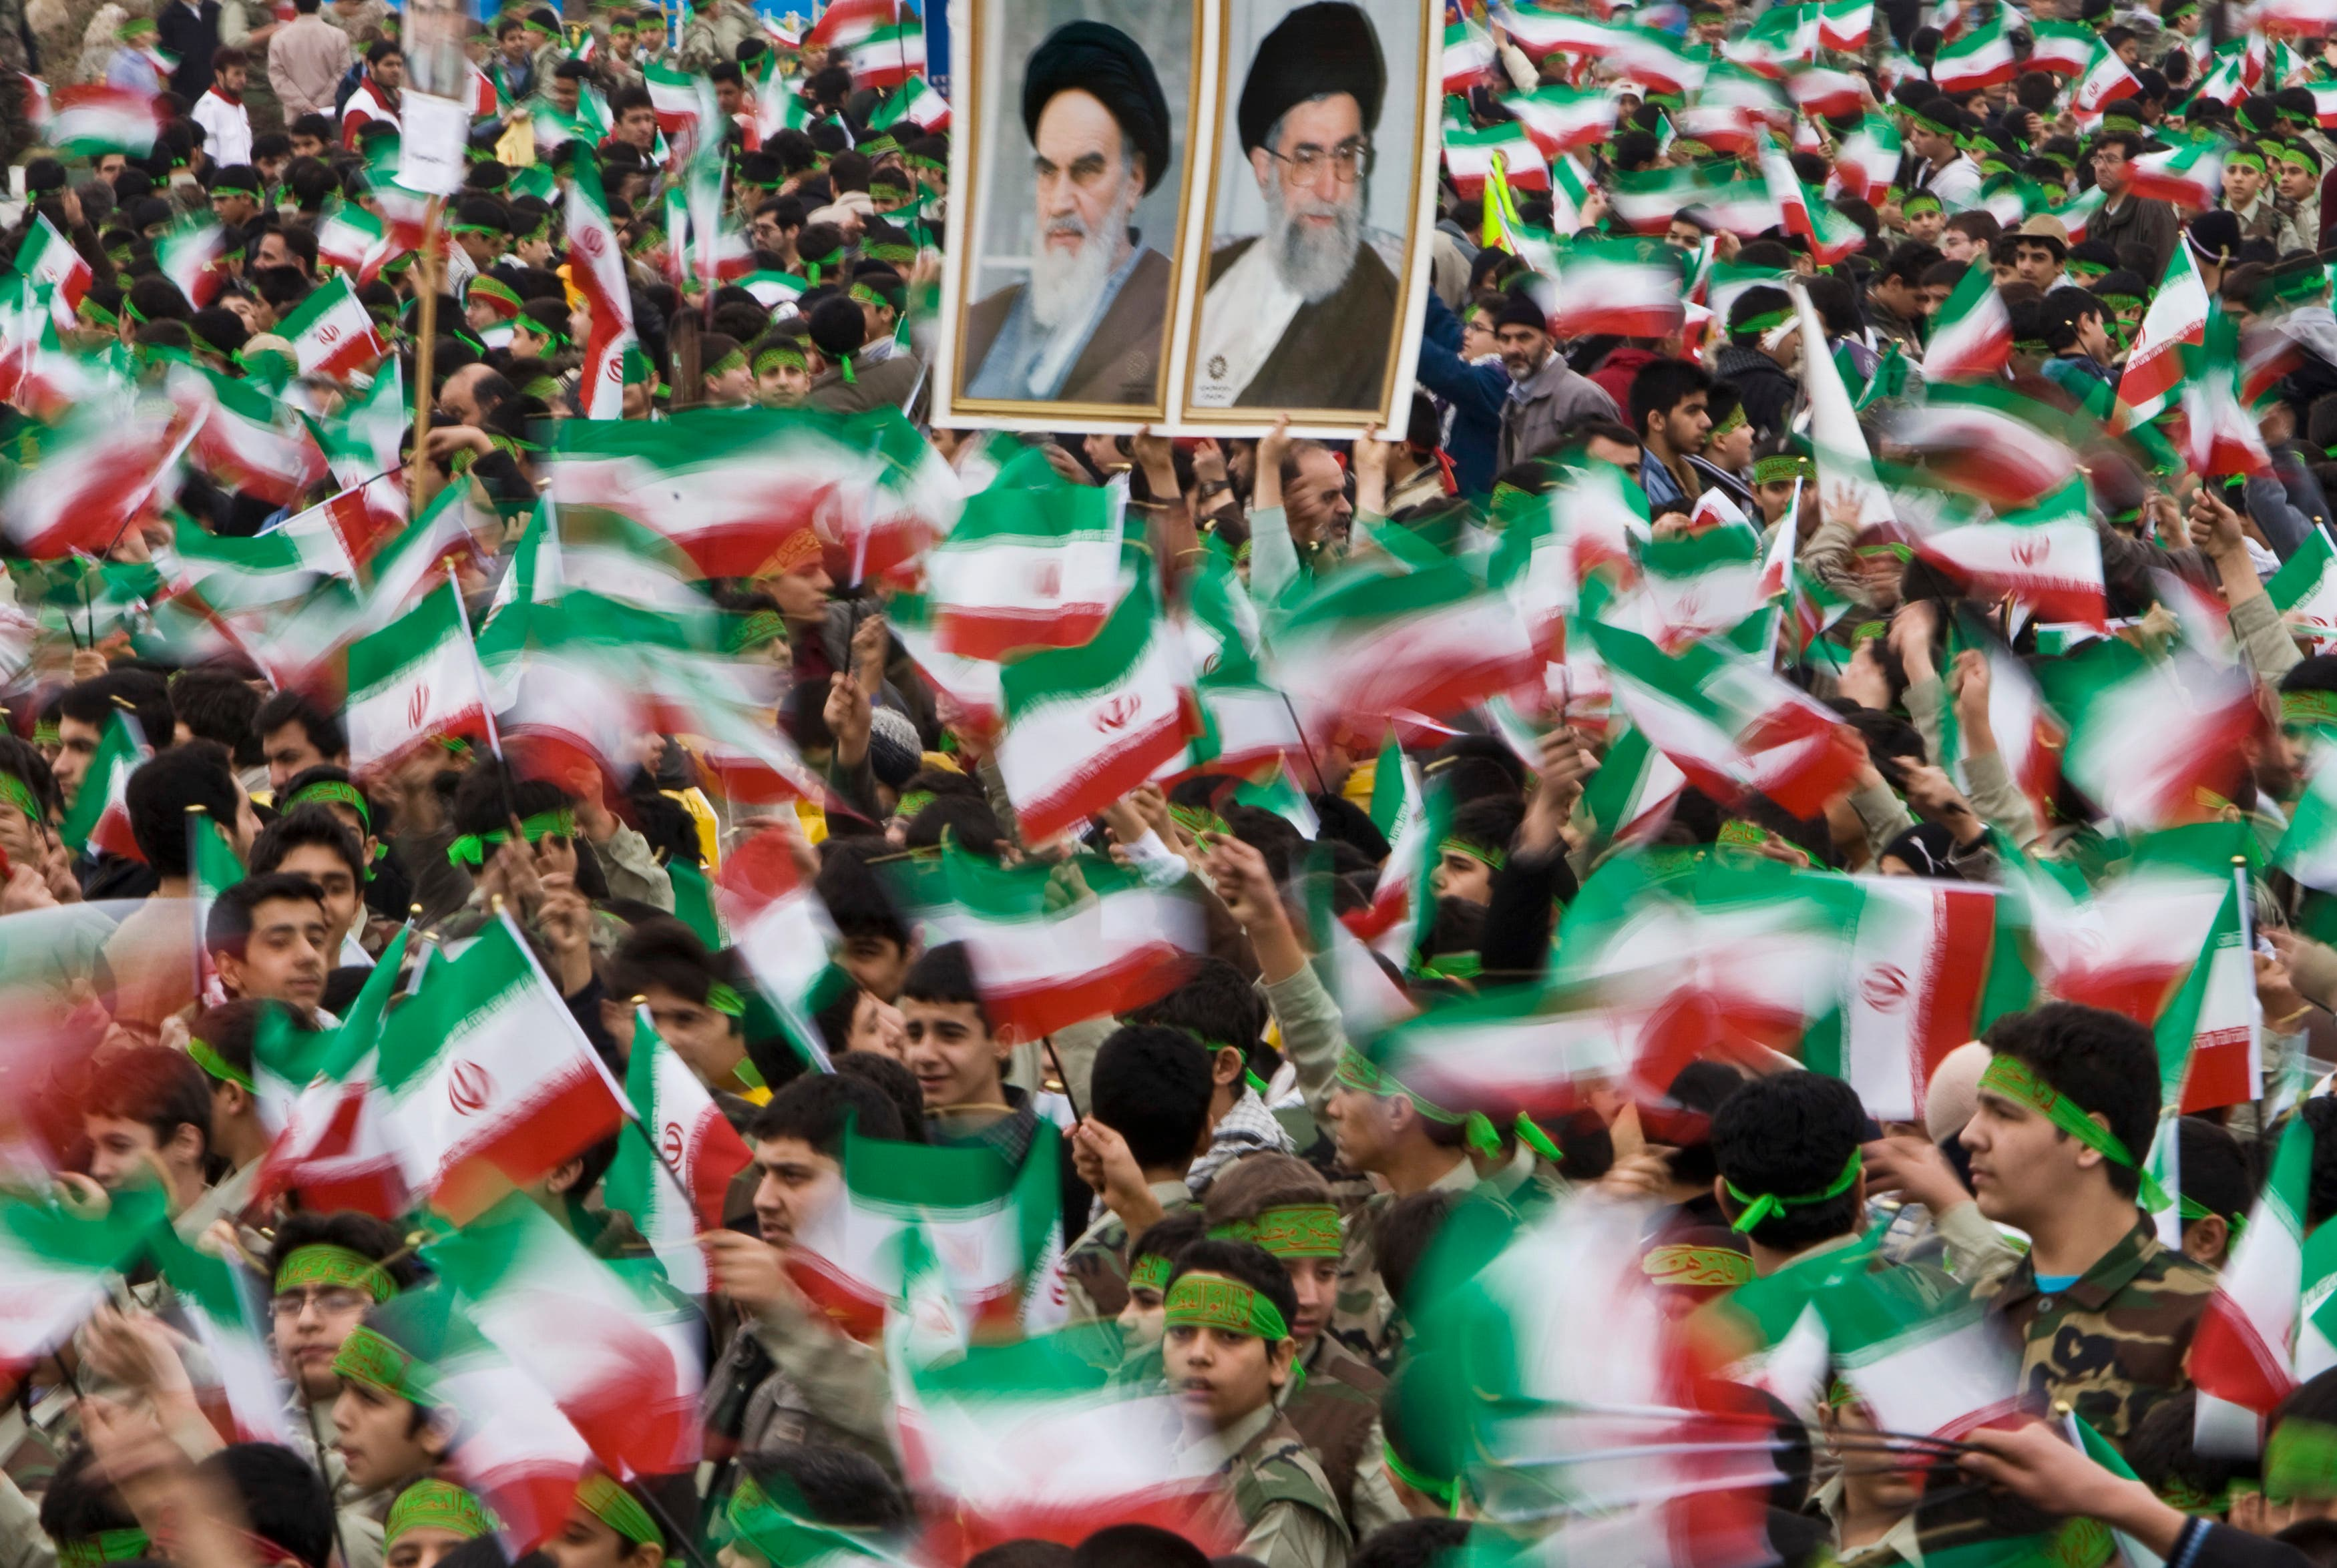 Students wave Iran's national flag as others hold pictures of Iran's Supreme Leader Ali Khamenei (R) and Iran's late leader Ruhollah Khomeini during a ceremony to mark the anniversary of Iran's 1979 Islamic Revolution on February 10, 2009. (Reuters)